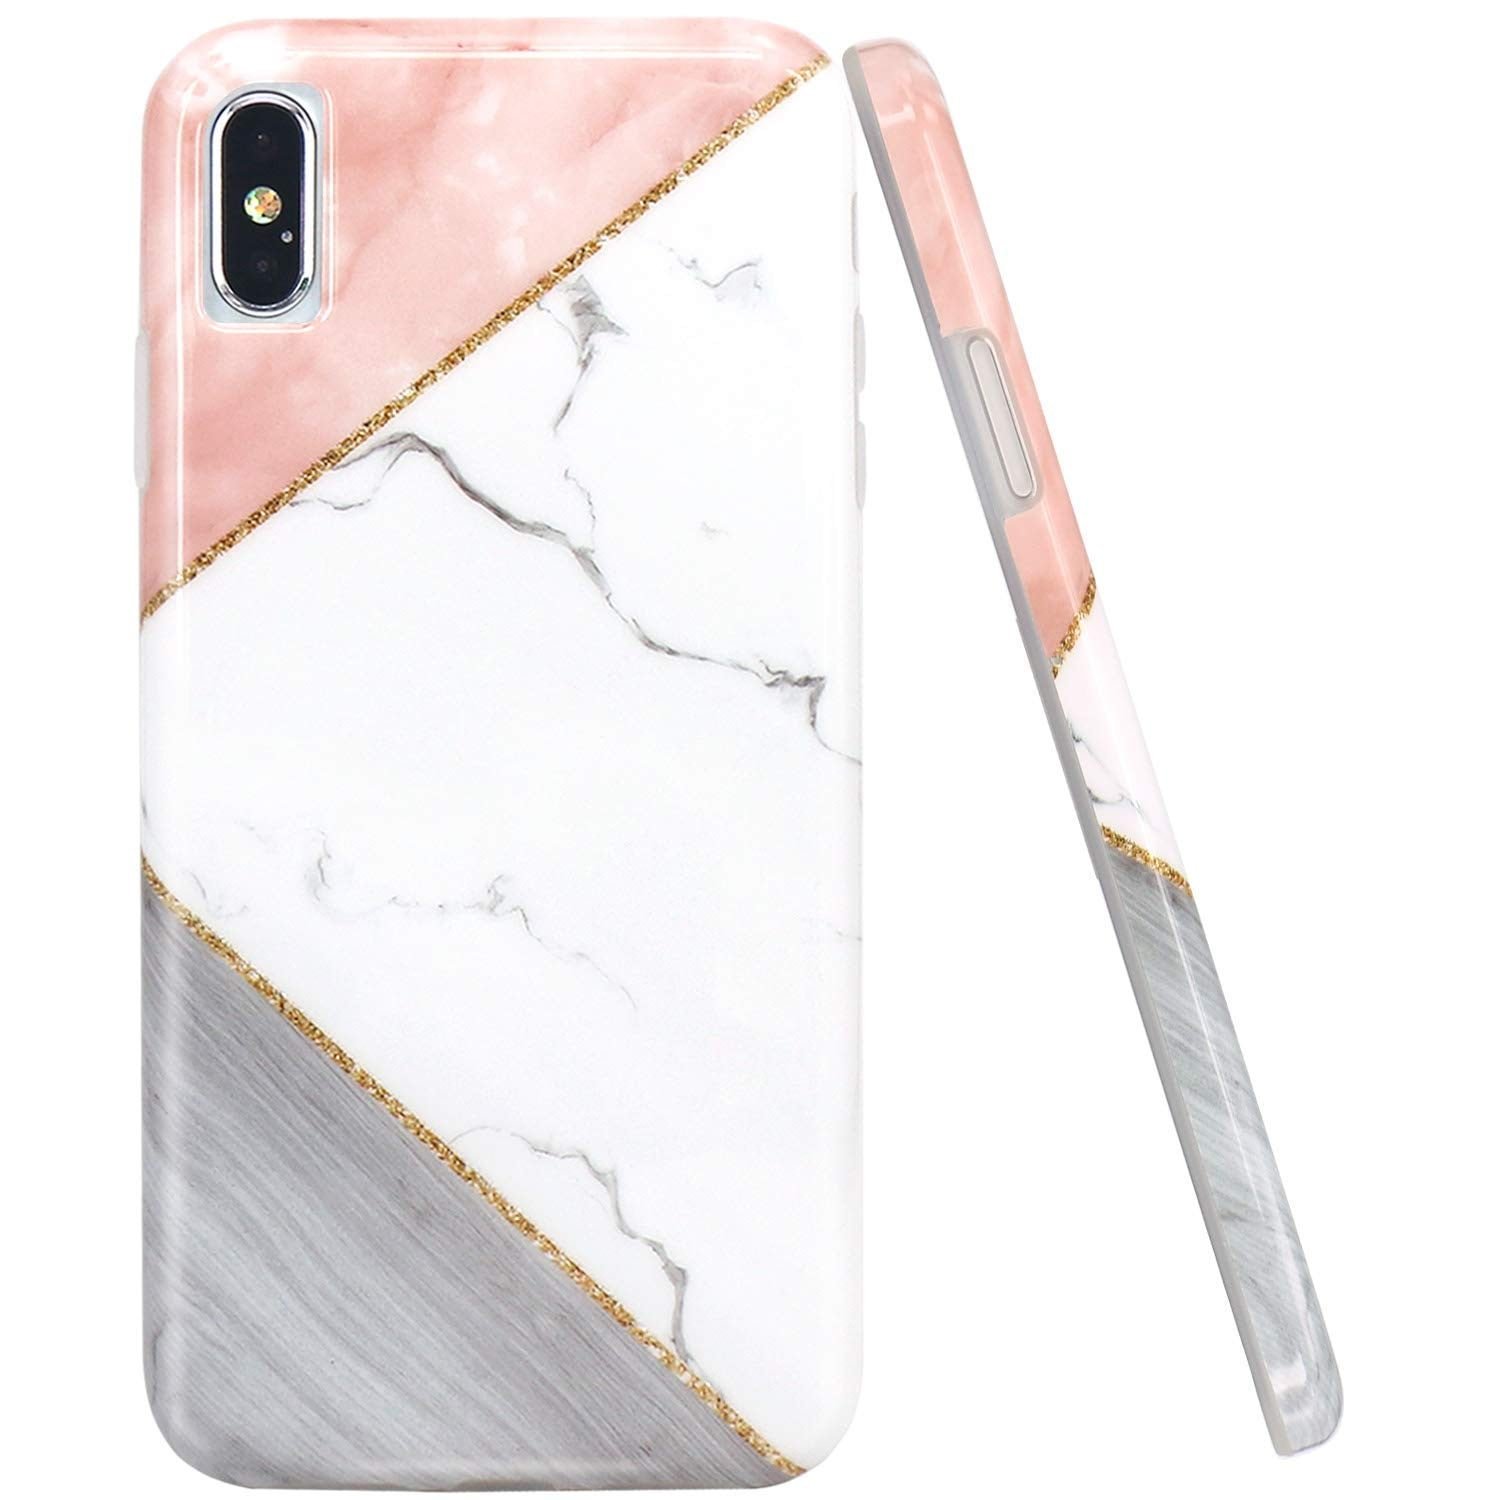 premium selection 4da82 9372c iPhone XS Max Cases | POPSUGAR Tech